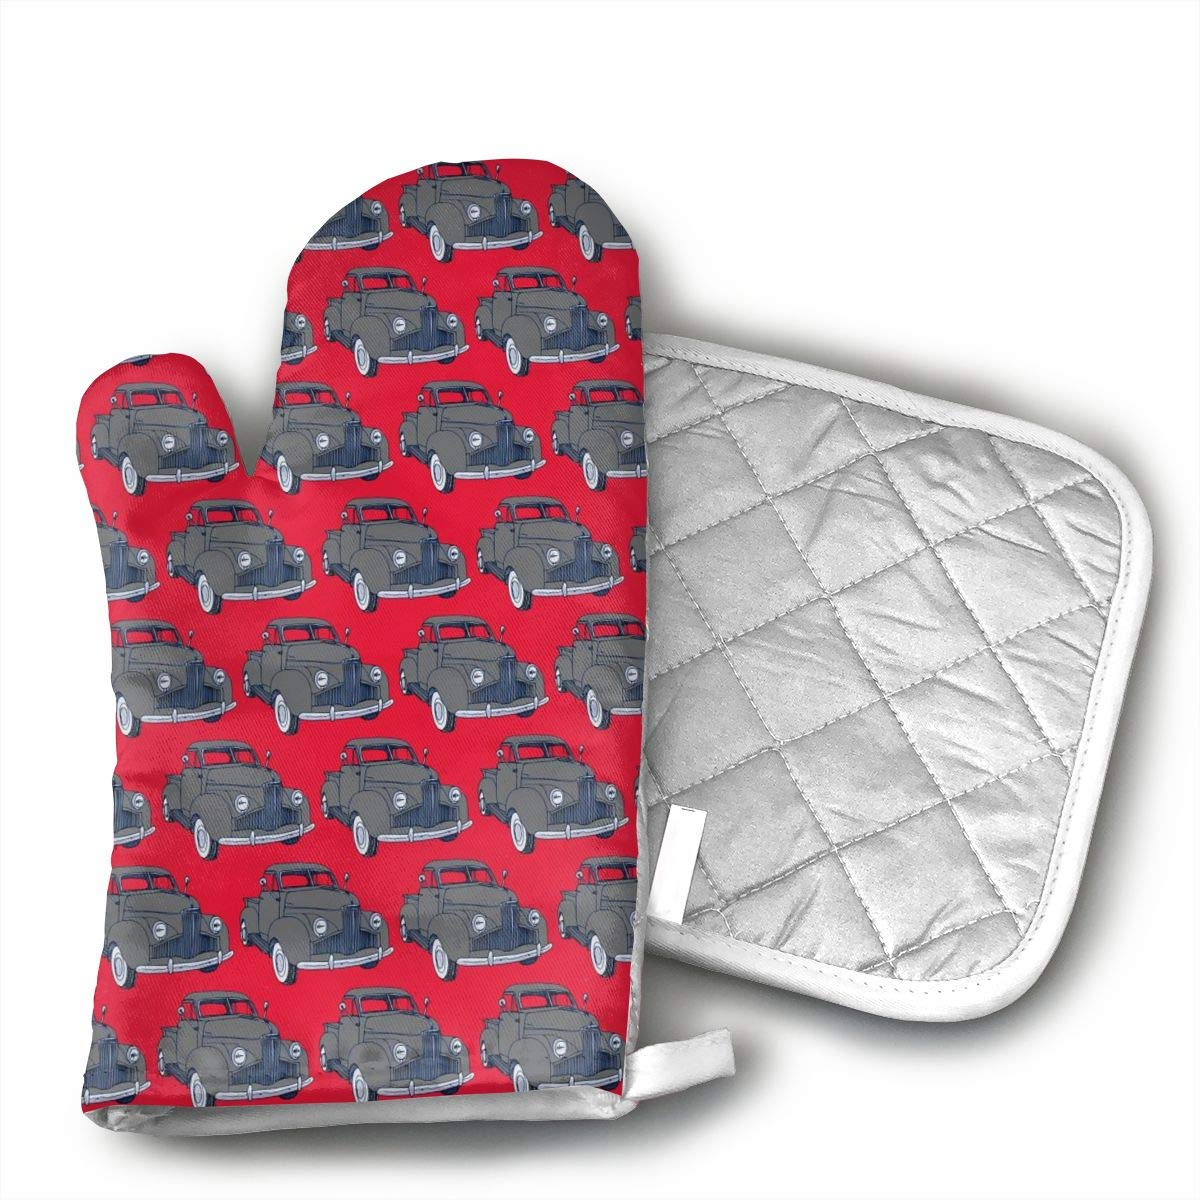 Star Blue Design Studebaker Truck Oven Mitts & Heat Resistant Pot Holder - with Polyester Cotton Non-Slip Grip, Best Used As Baking, Grilling, BBQ, Cooking, Kitchen Or Oven Gloves